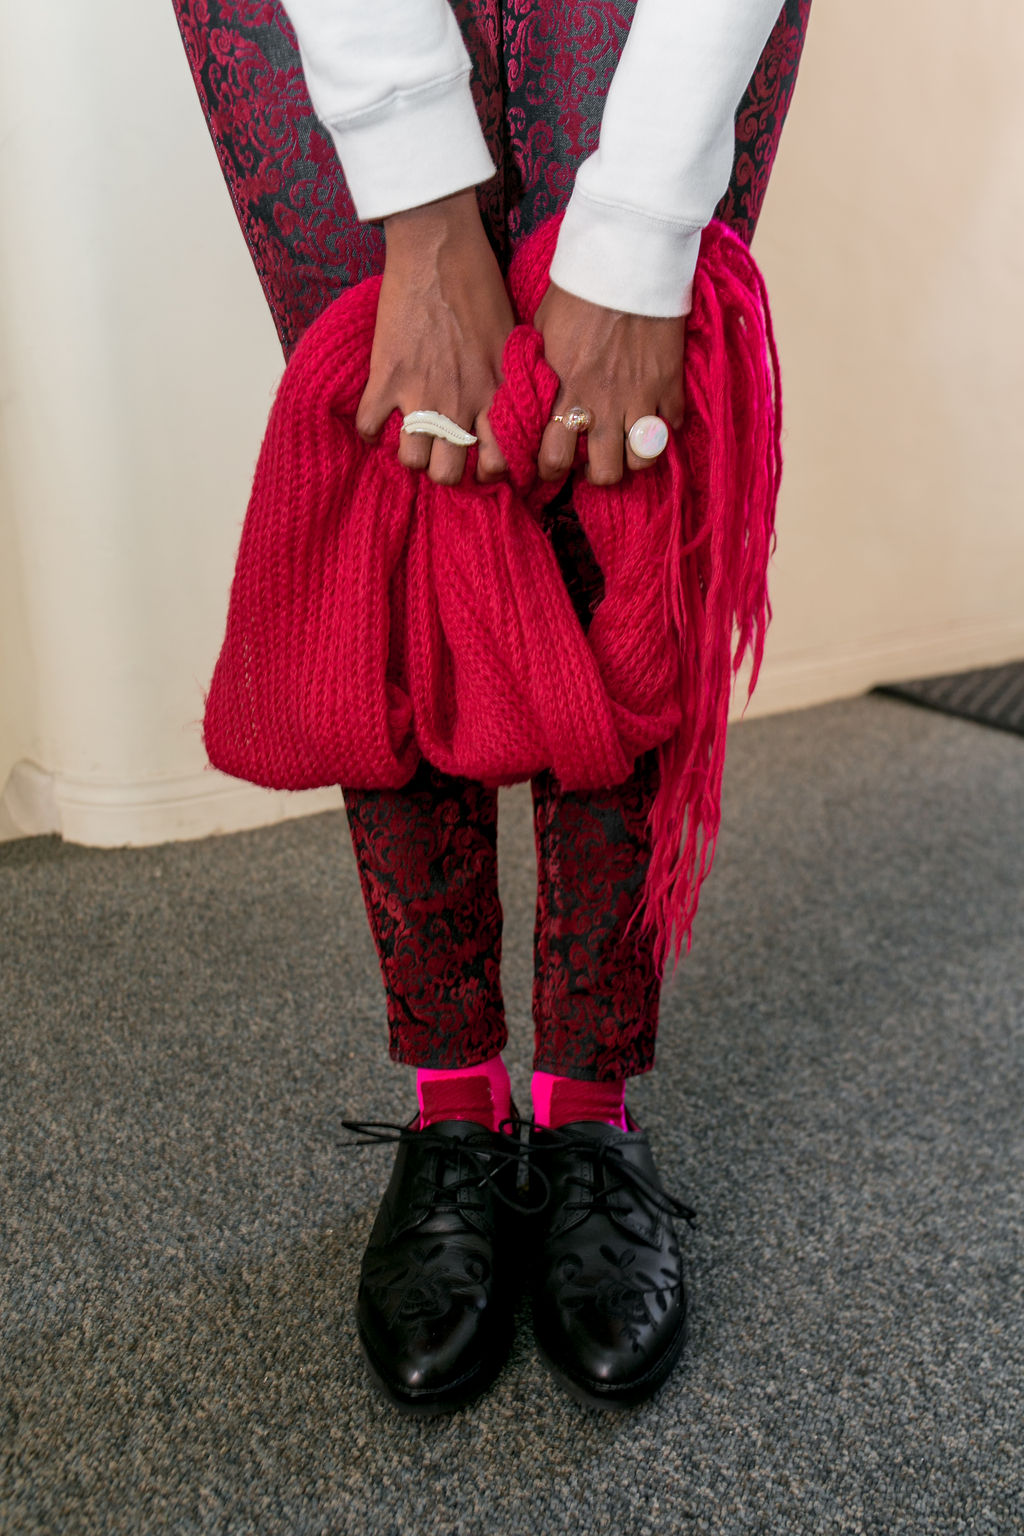 RSEE-LCM-Liveclothesminded-xmmtt-longbeach-2428-christmas outfit idea - red + pink - trend 2019 - dress shoes - pink socks - athletic socks - how to wear fun socks - cool sock